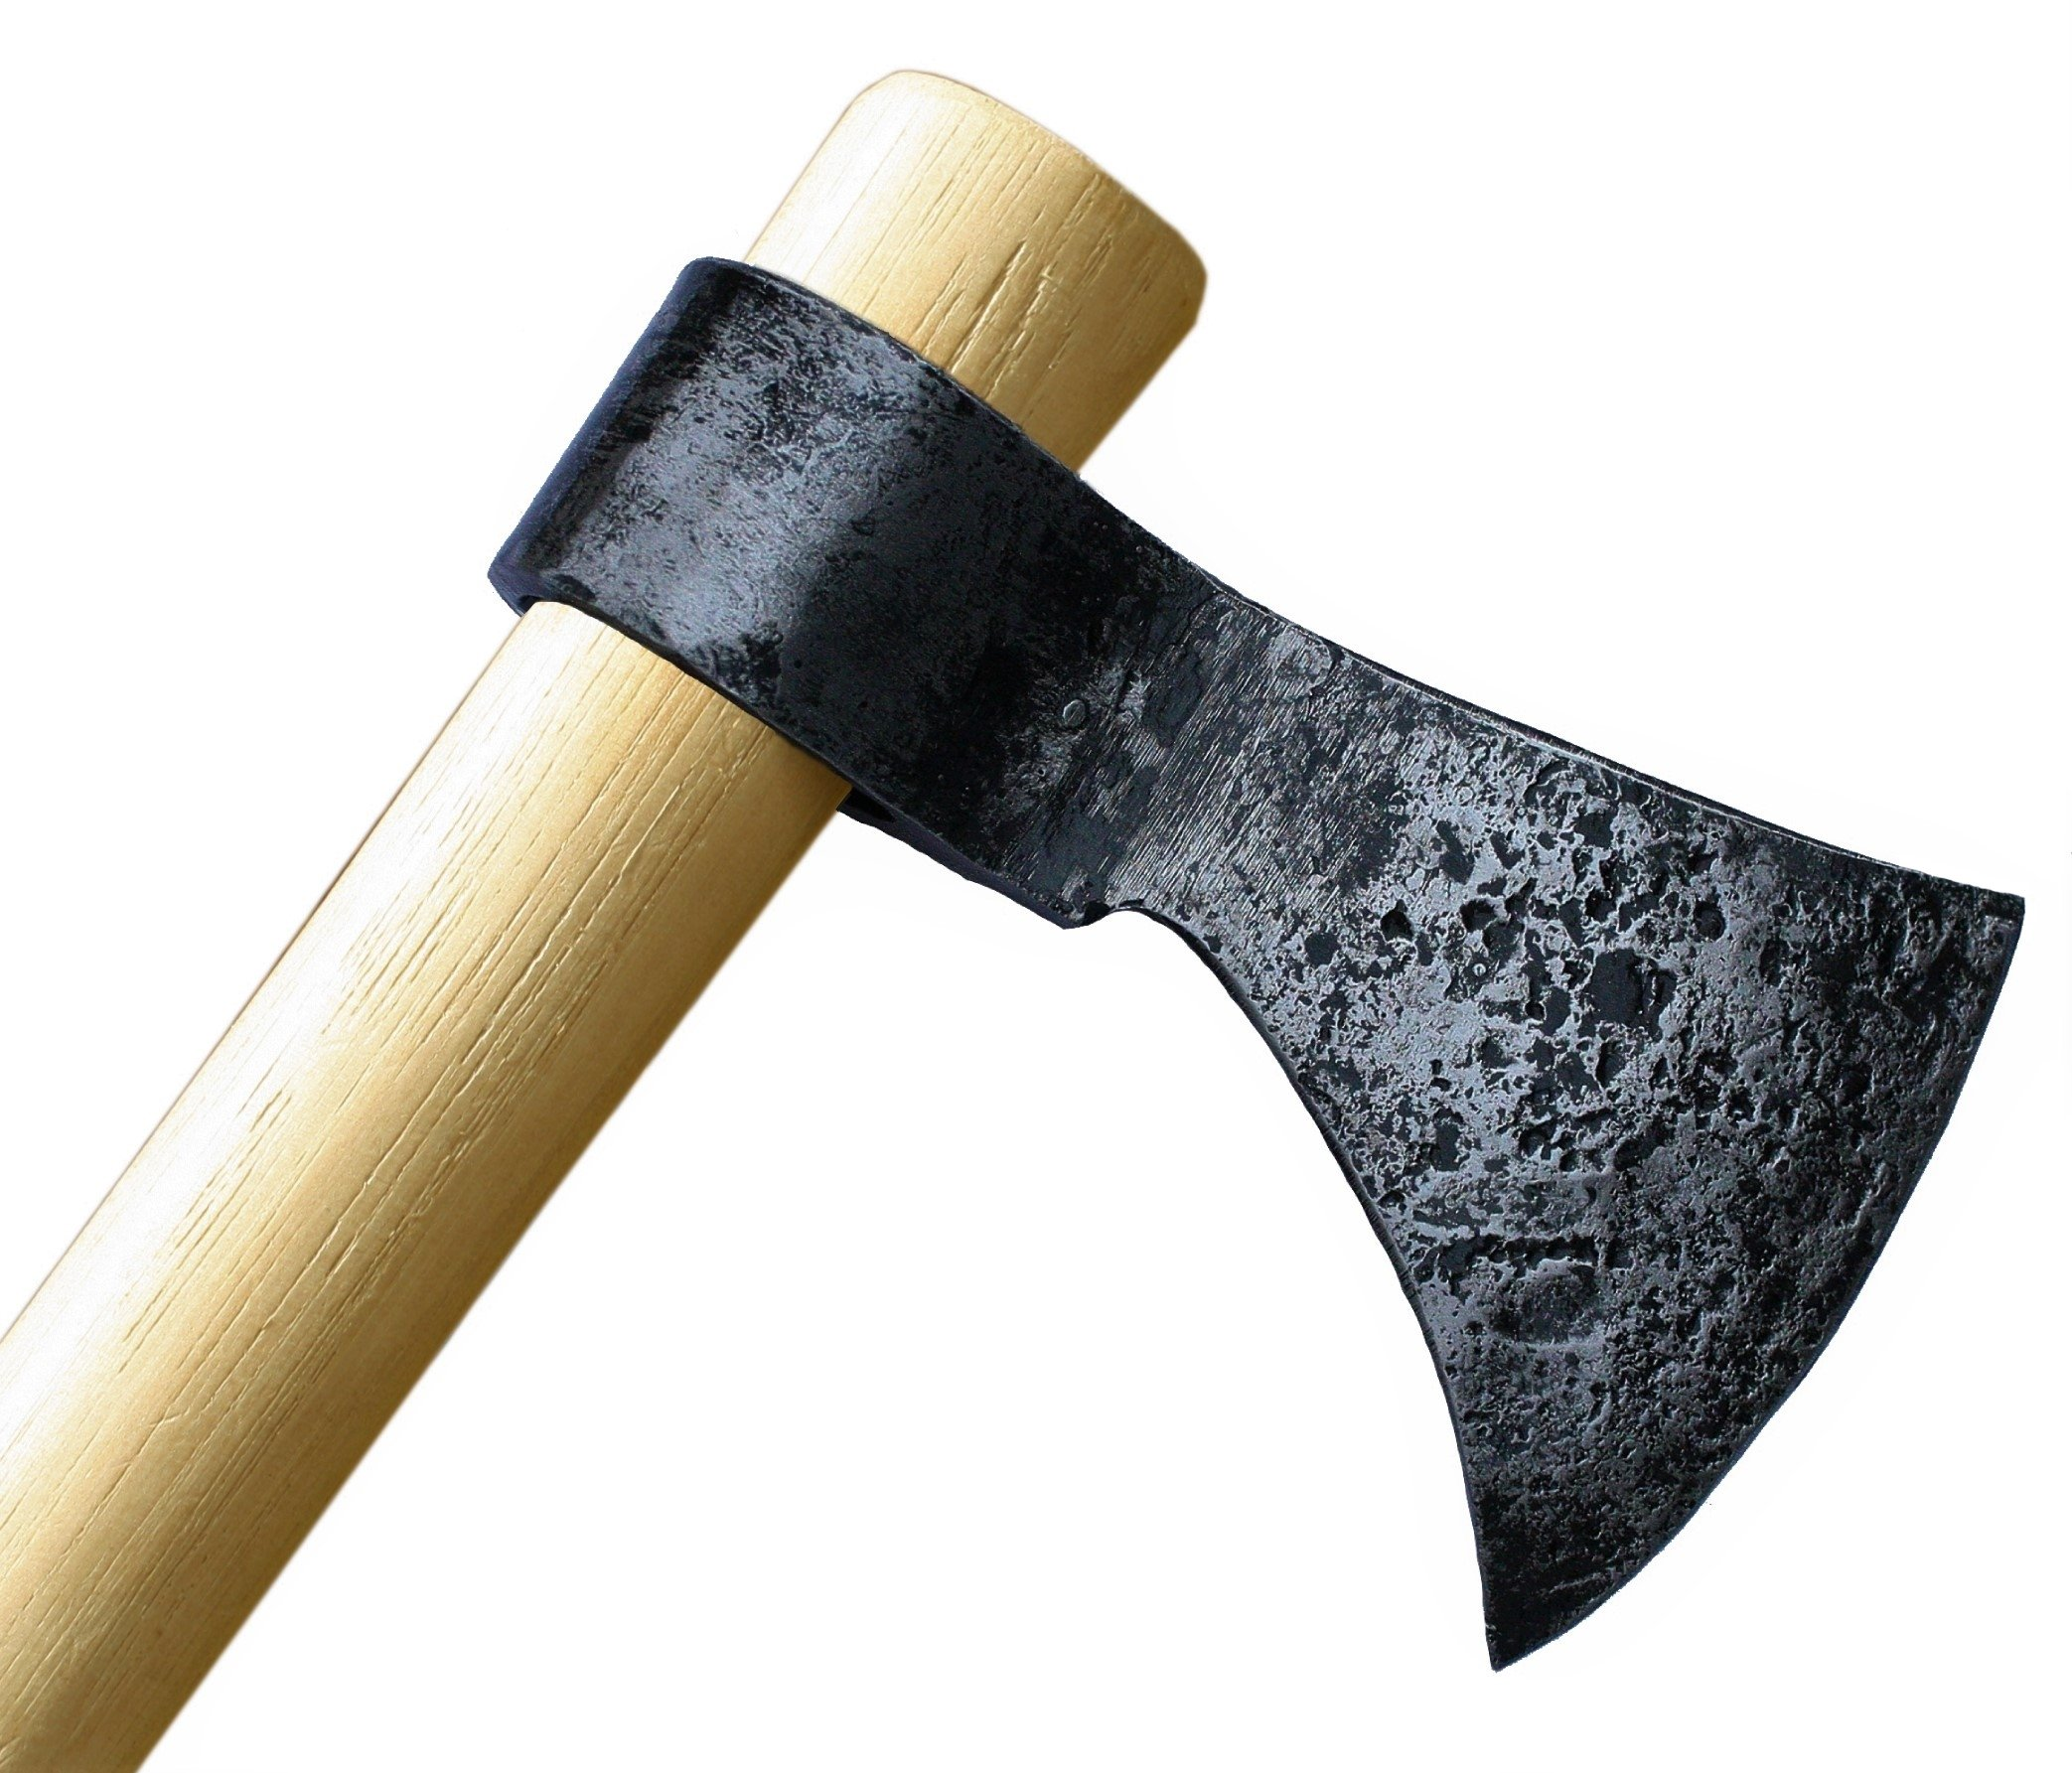 Throwing Axe - Win Your Next Viking Throwing Tomahawk Competition! 19'' Hand Forged Hatchet From High Carbon Steel, NMLRA Approved, 100% Guaranteed From Defects (Antiqued)